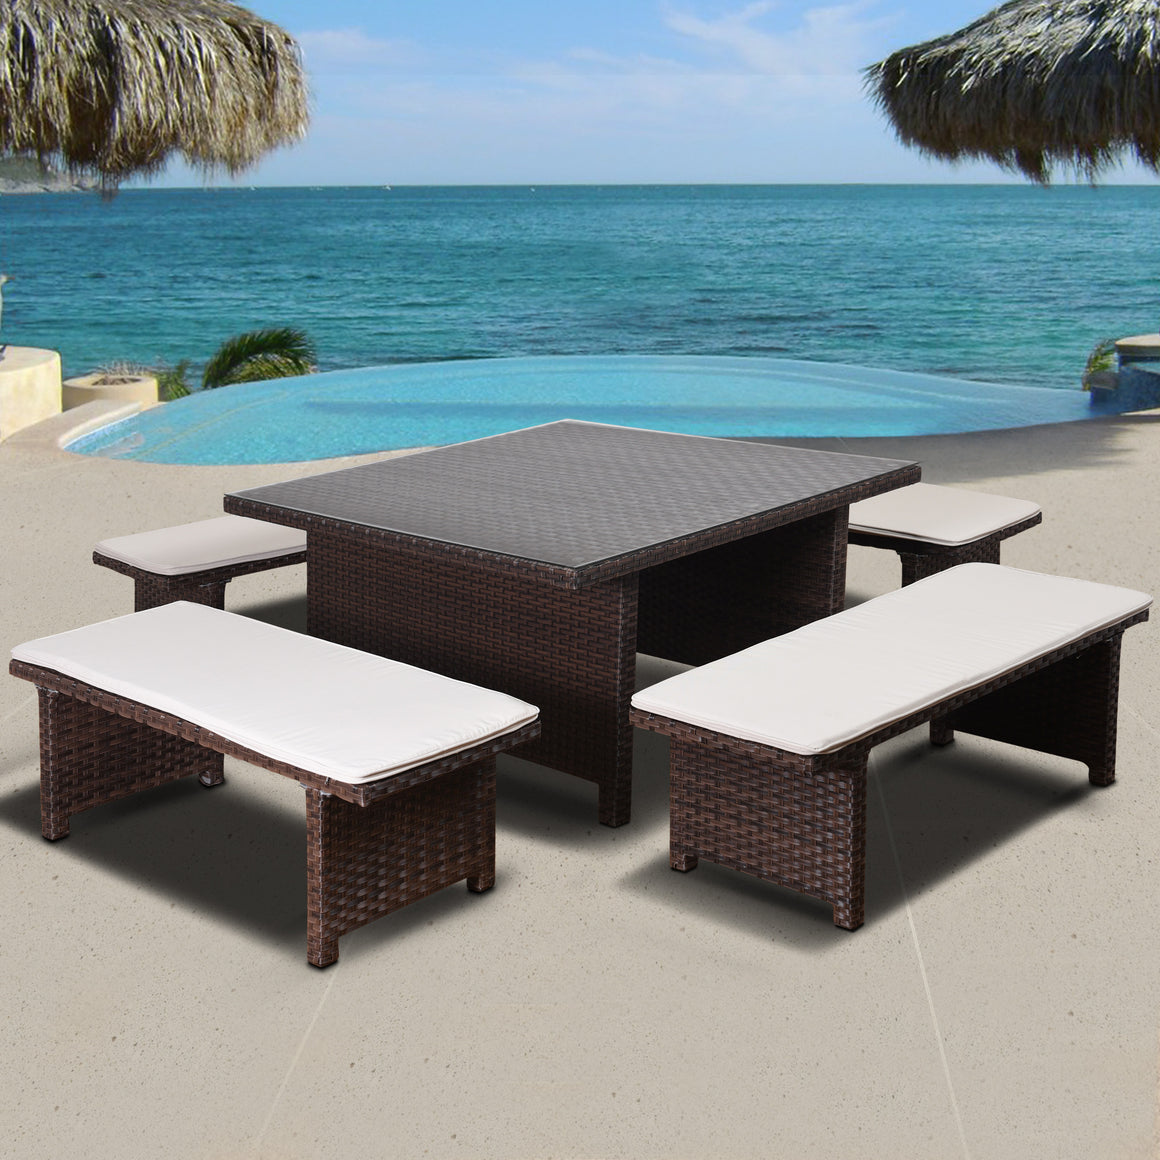 Atlantic Bellagio 5 Piece Low Patio Dining Set , International Home Miami- grayburd